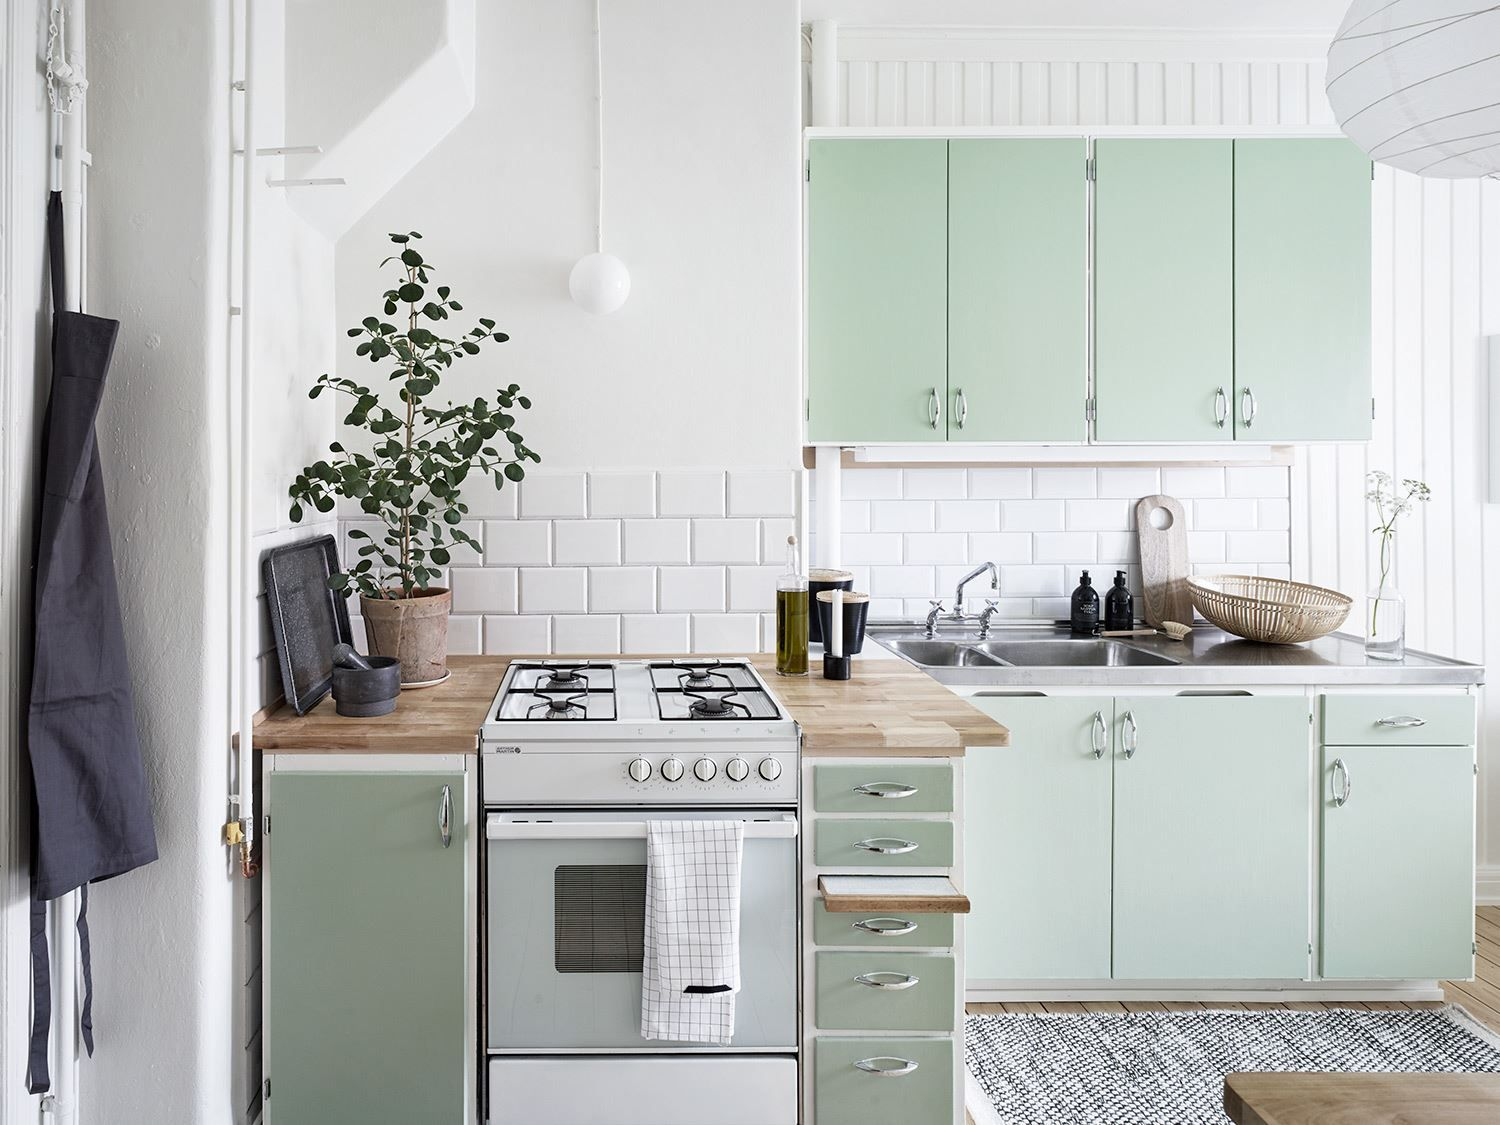 The Owner Of This Lovingly Preserved Apartment Did Something Clever In Kitchen Instead